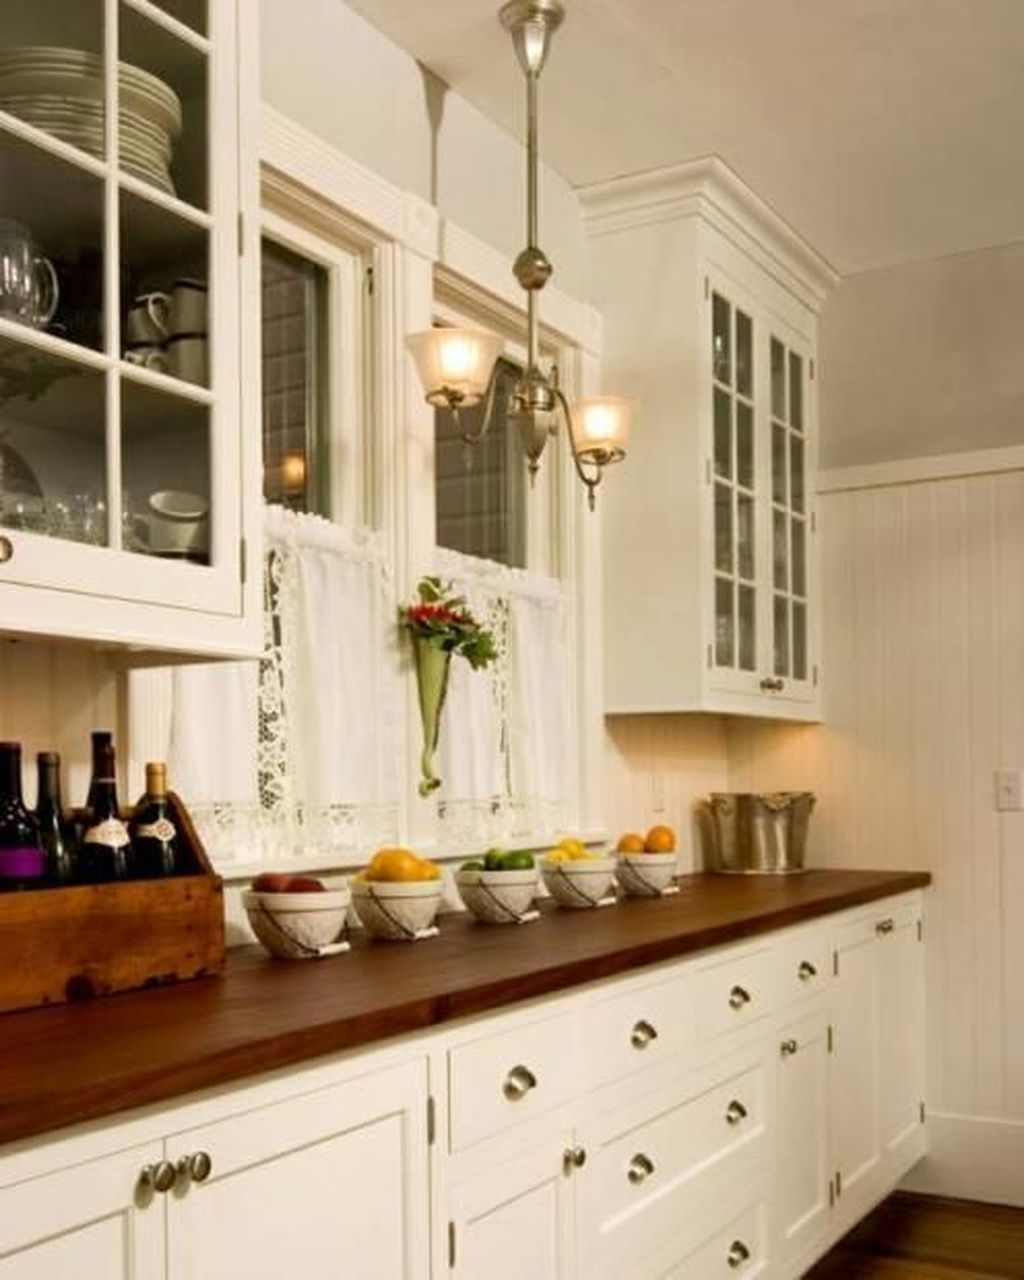 25 Absolutely Gorgeous Transitional Style Kitchen Ideas: 20+ Gorgeous Traditional Kitchen Design Ideas